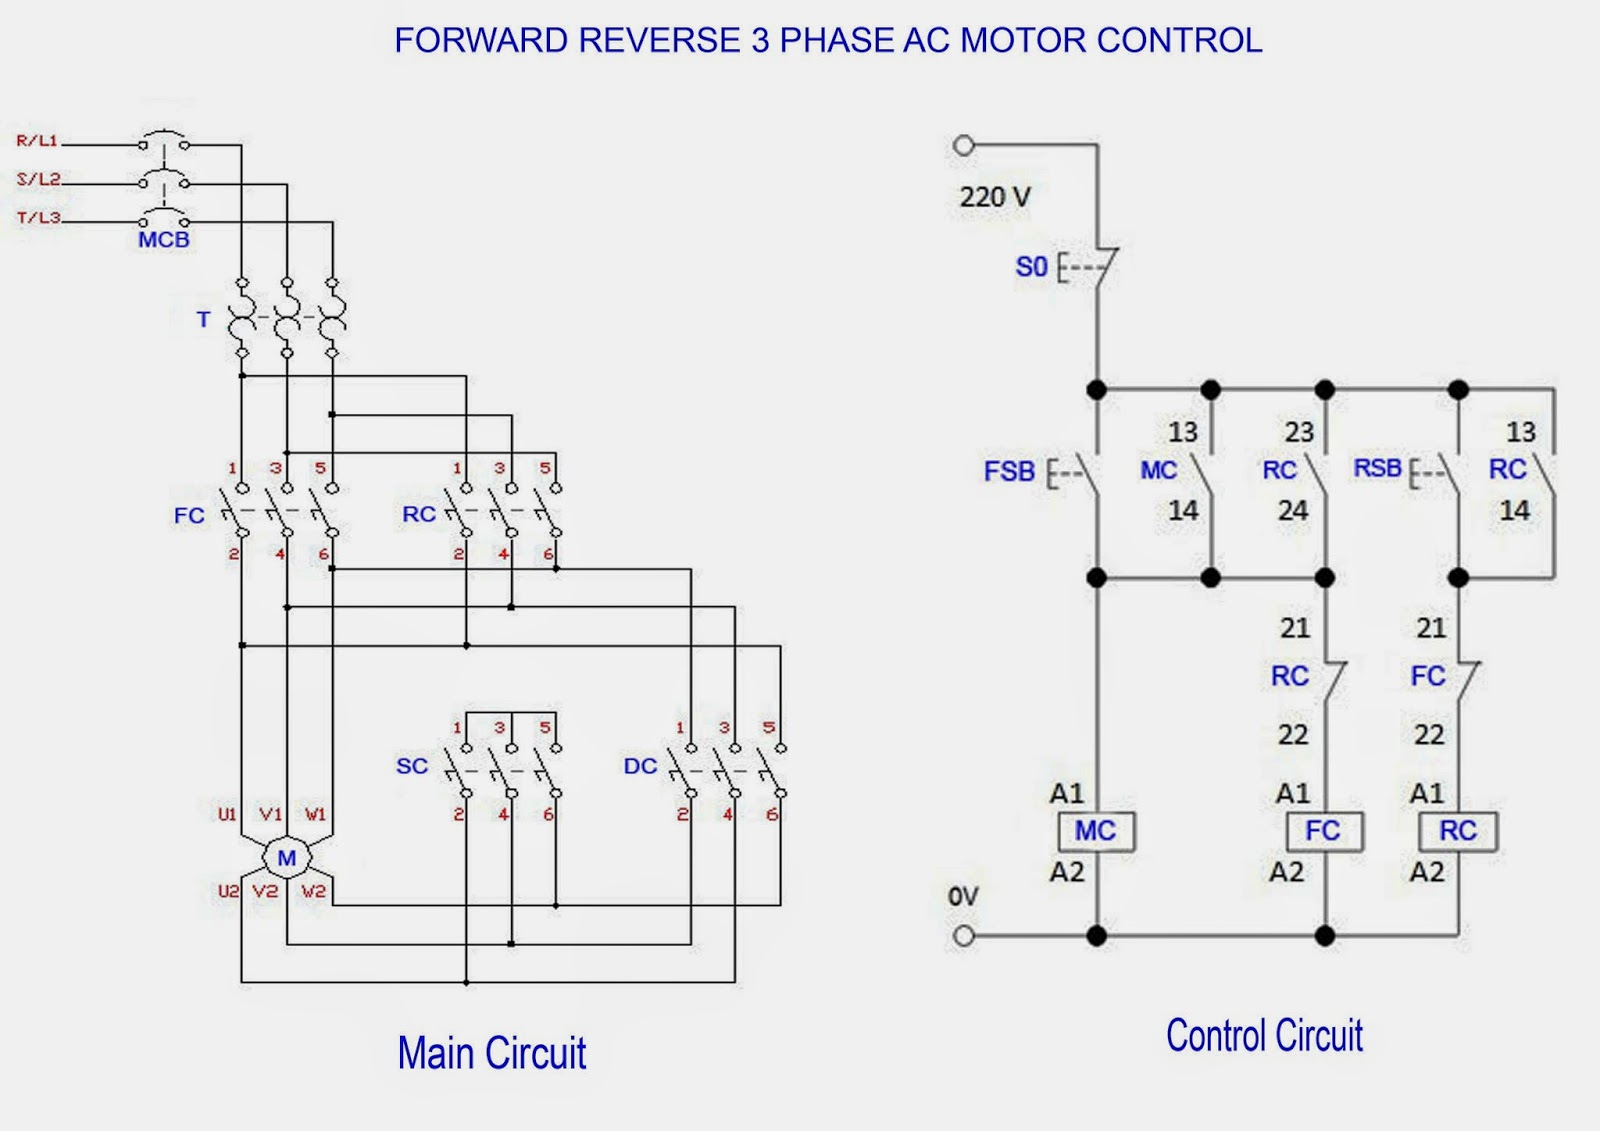 motor control wiring diagram ppt simple wiring diagram rh 7 7 2 datschmeckt de